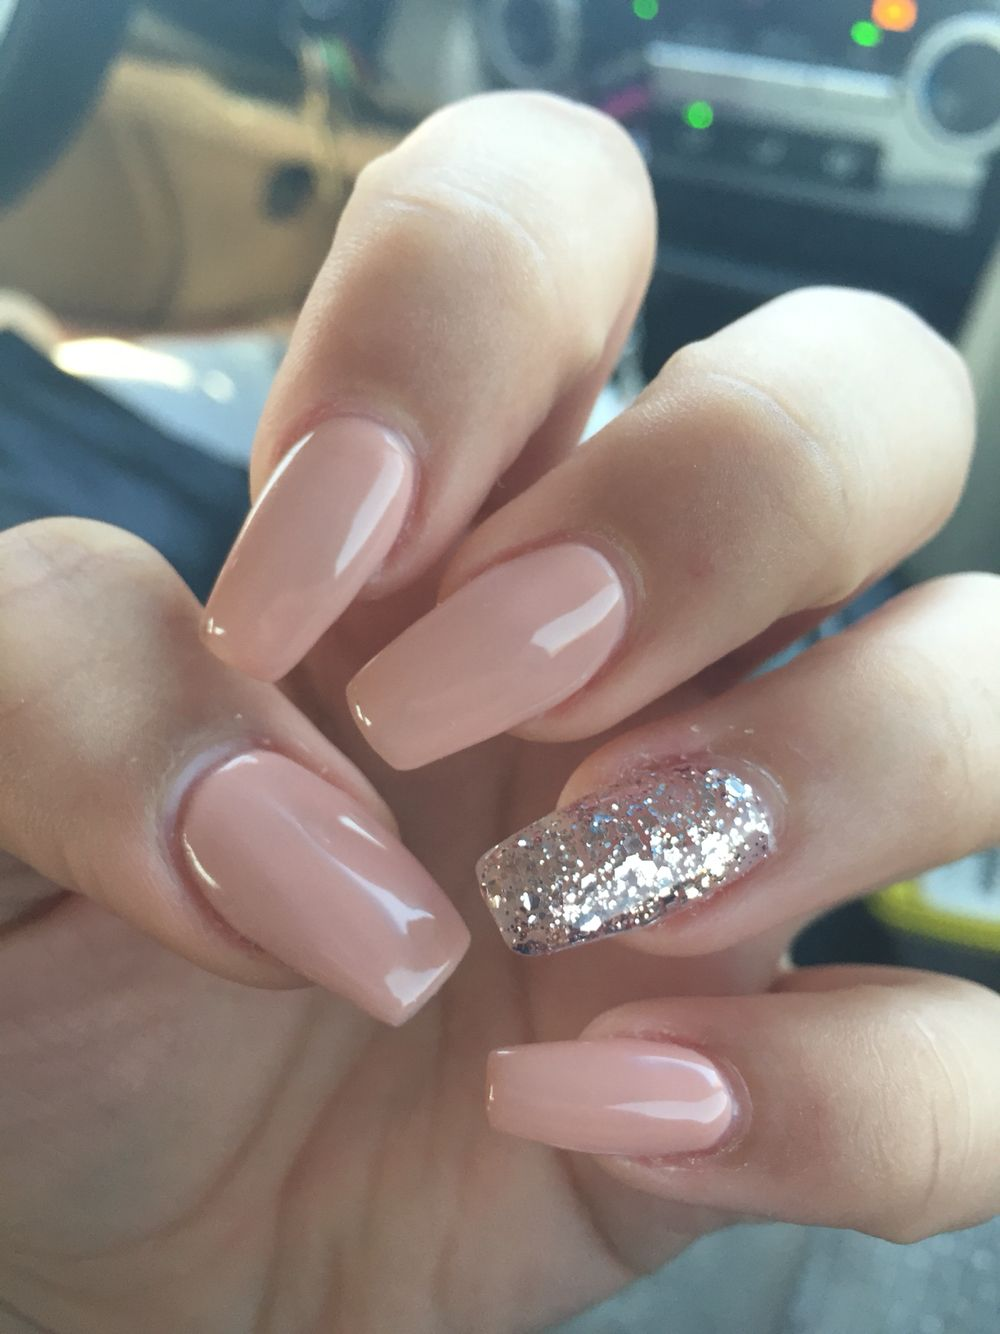 acrylic and shellac coffin nails | hair&nails | pinterest | coffin